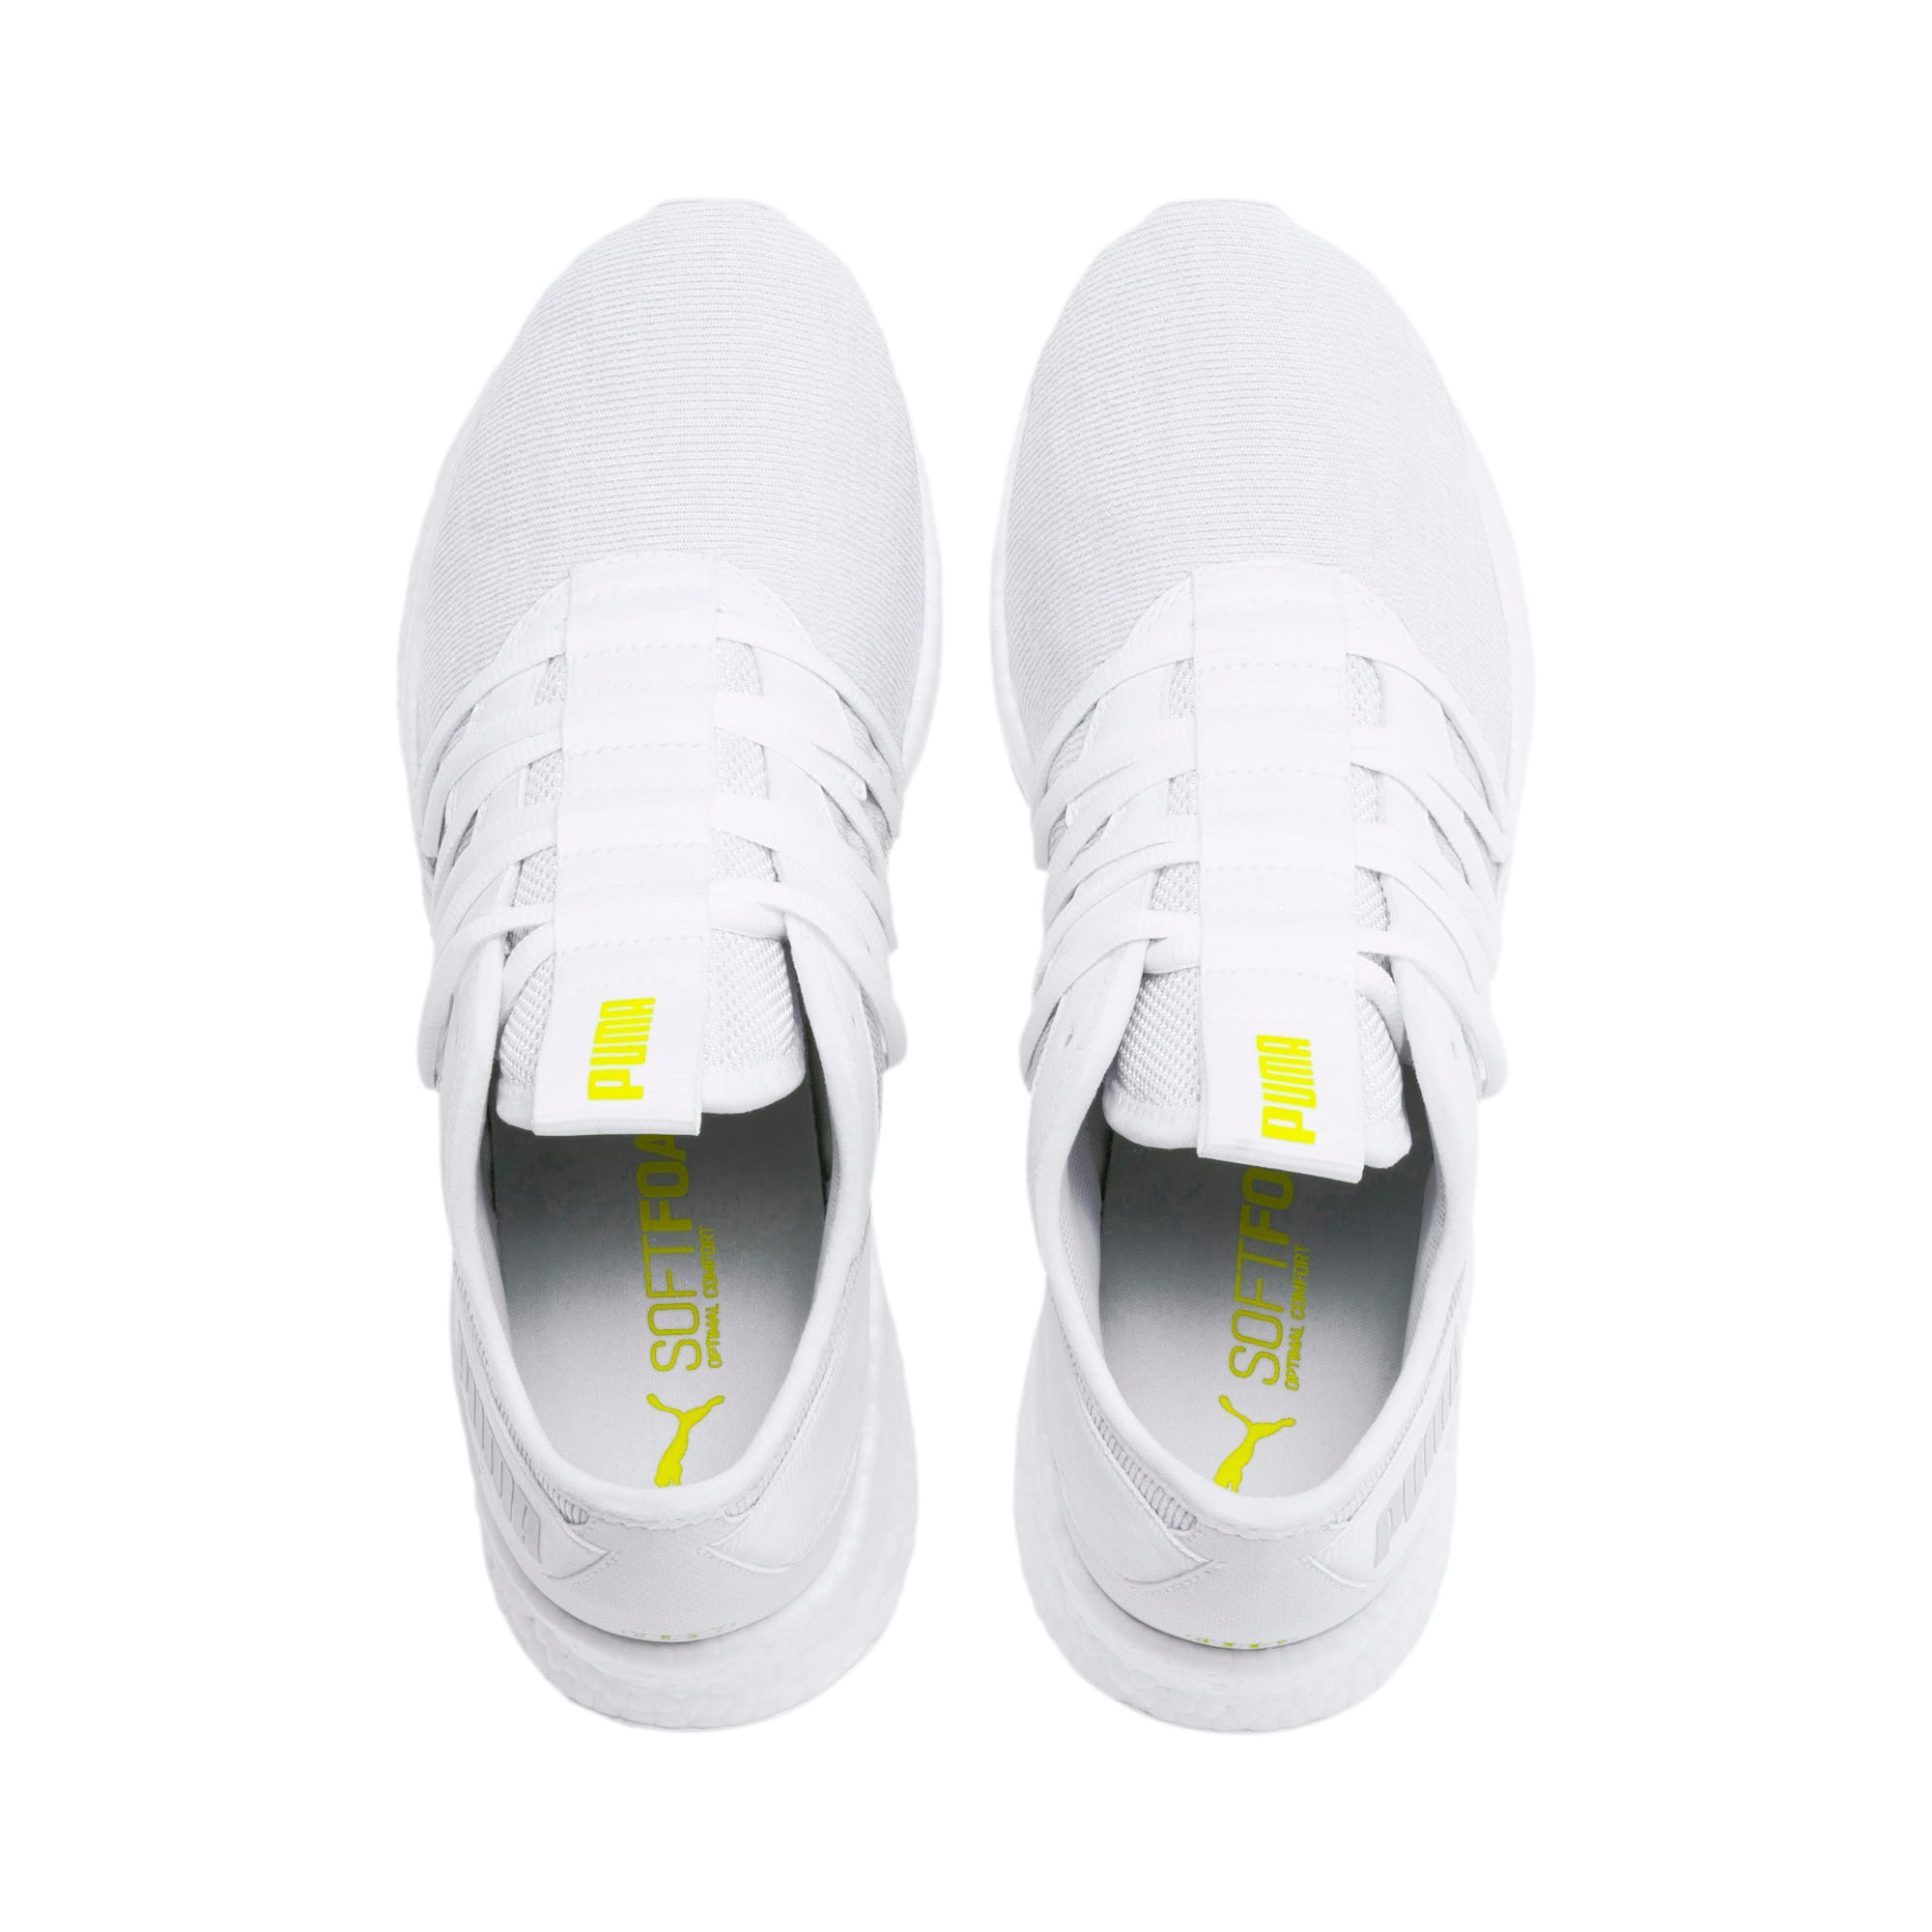 Thumbnail 7 of NRGY Star Knit Trainers, White-Glacier Gray-Yellow, medium